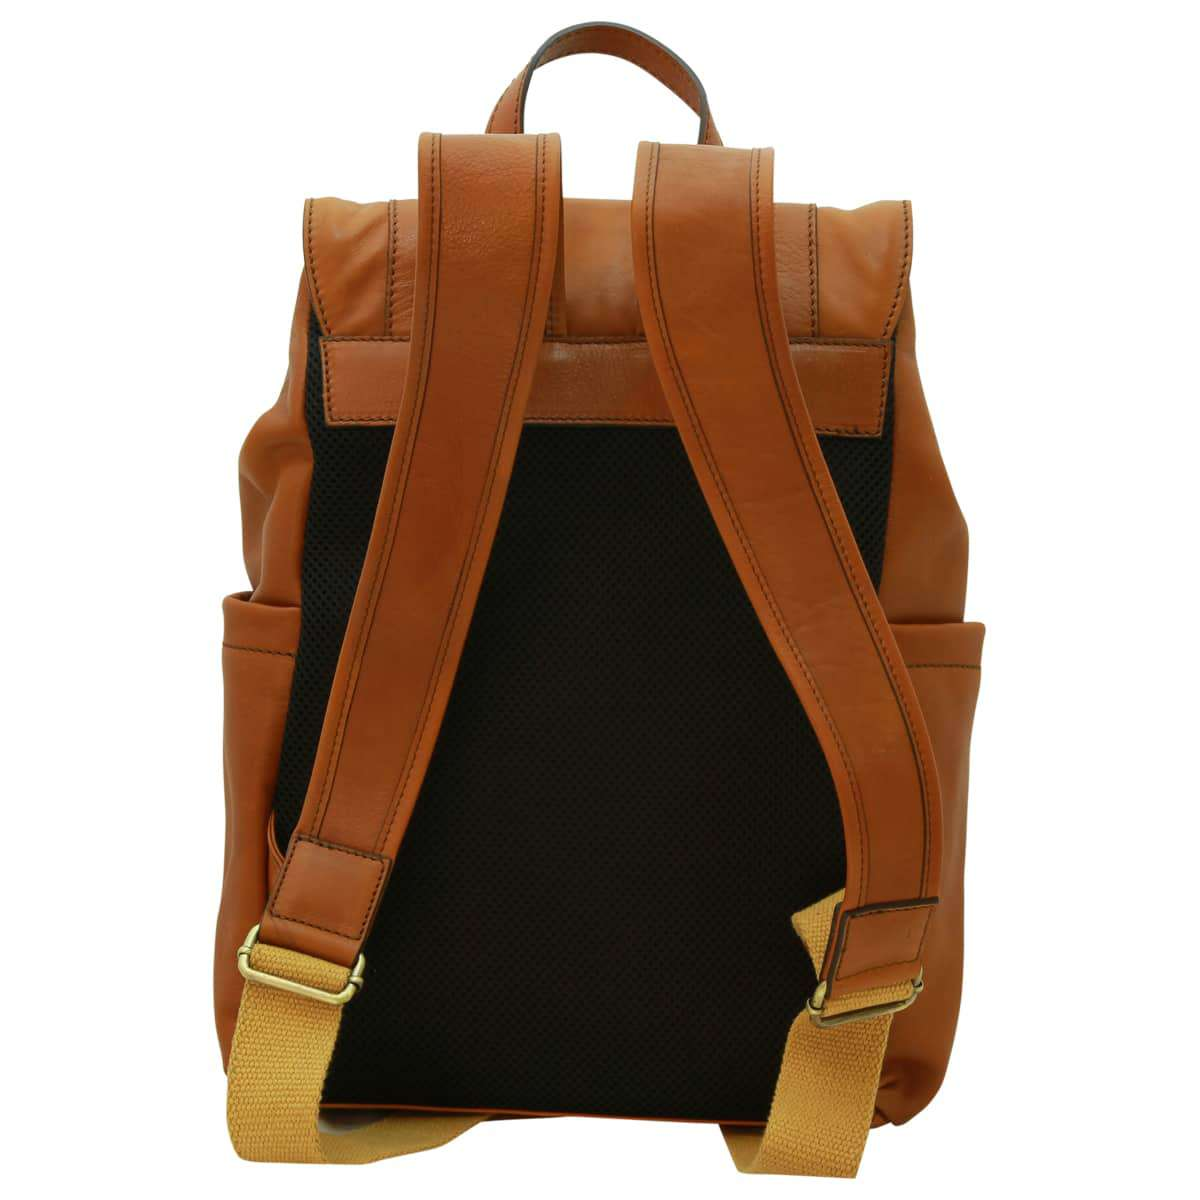 Leather laptop backpack – Gold | 030891CO UK | Old Angler Firenze